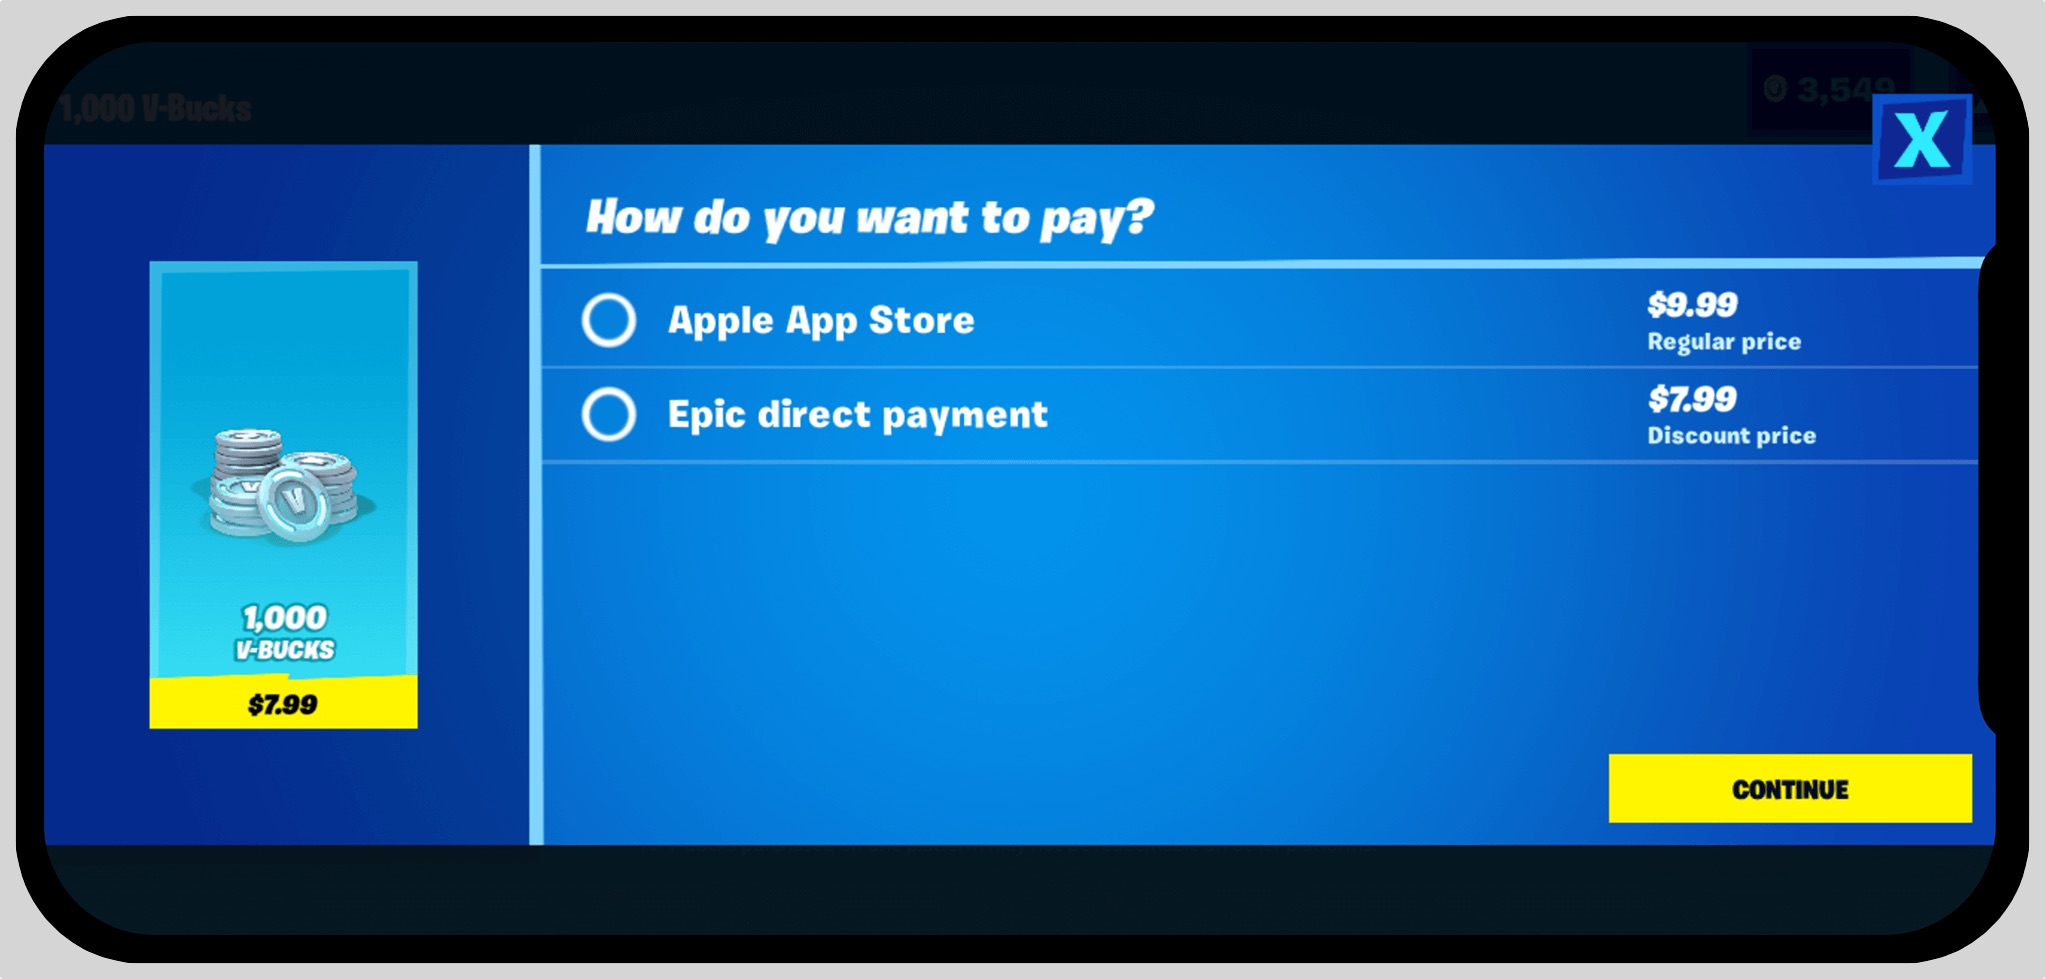 epic-direct-pay-apple-app-store-2045x979-73003316914